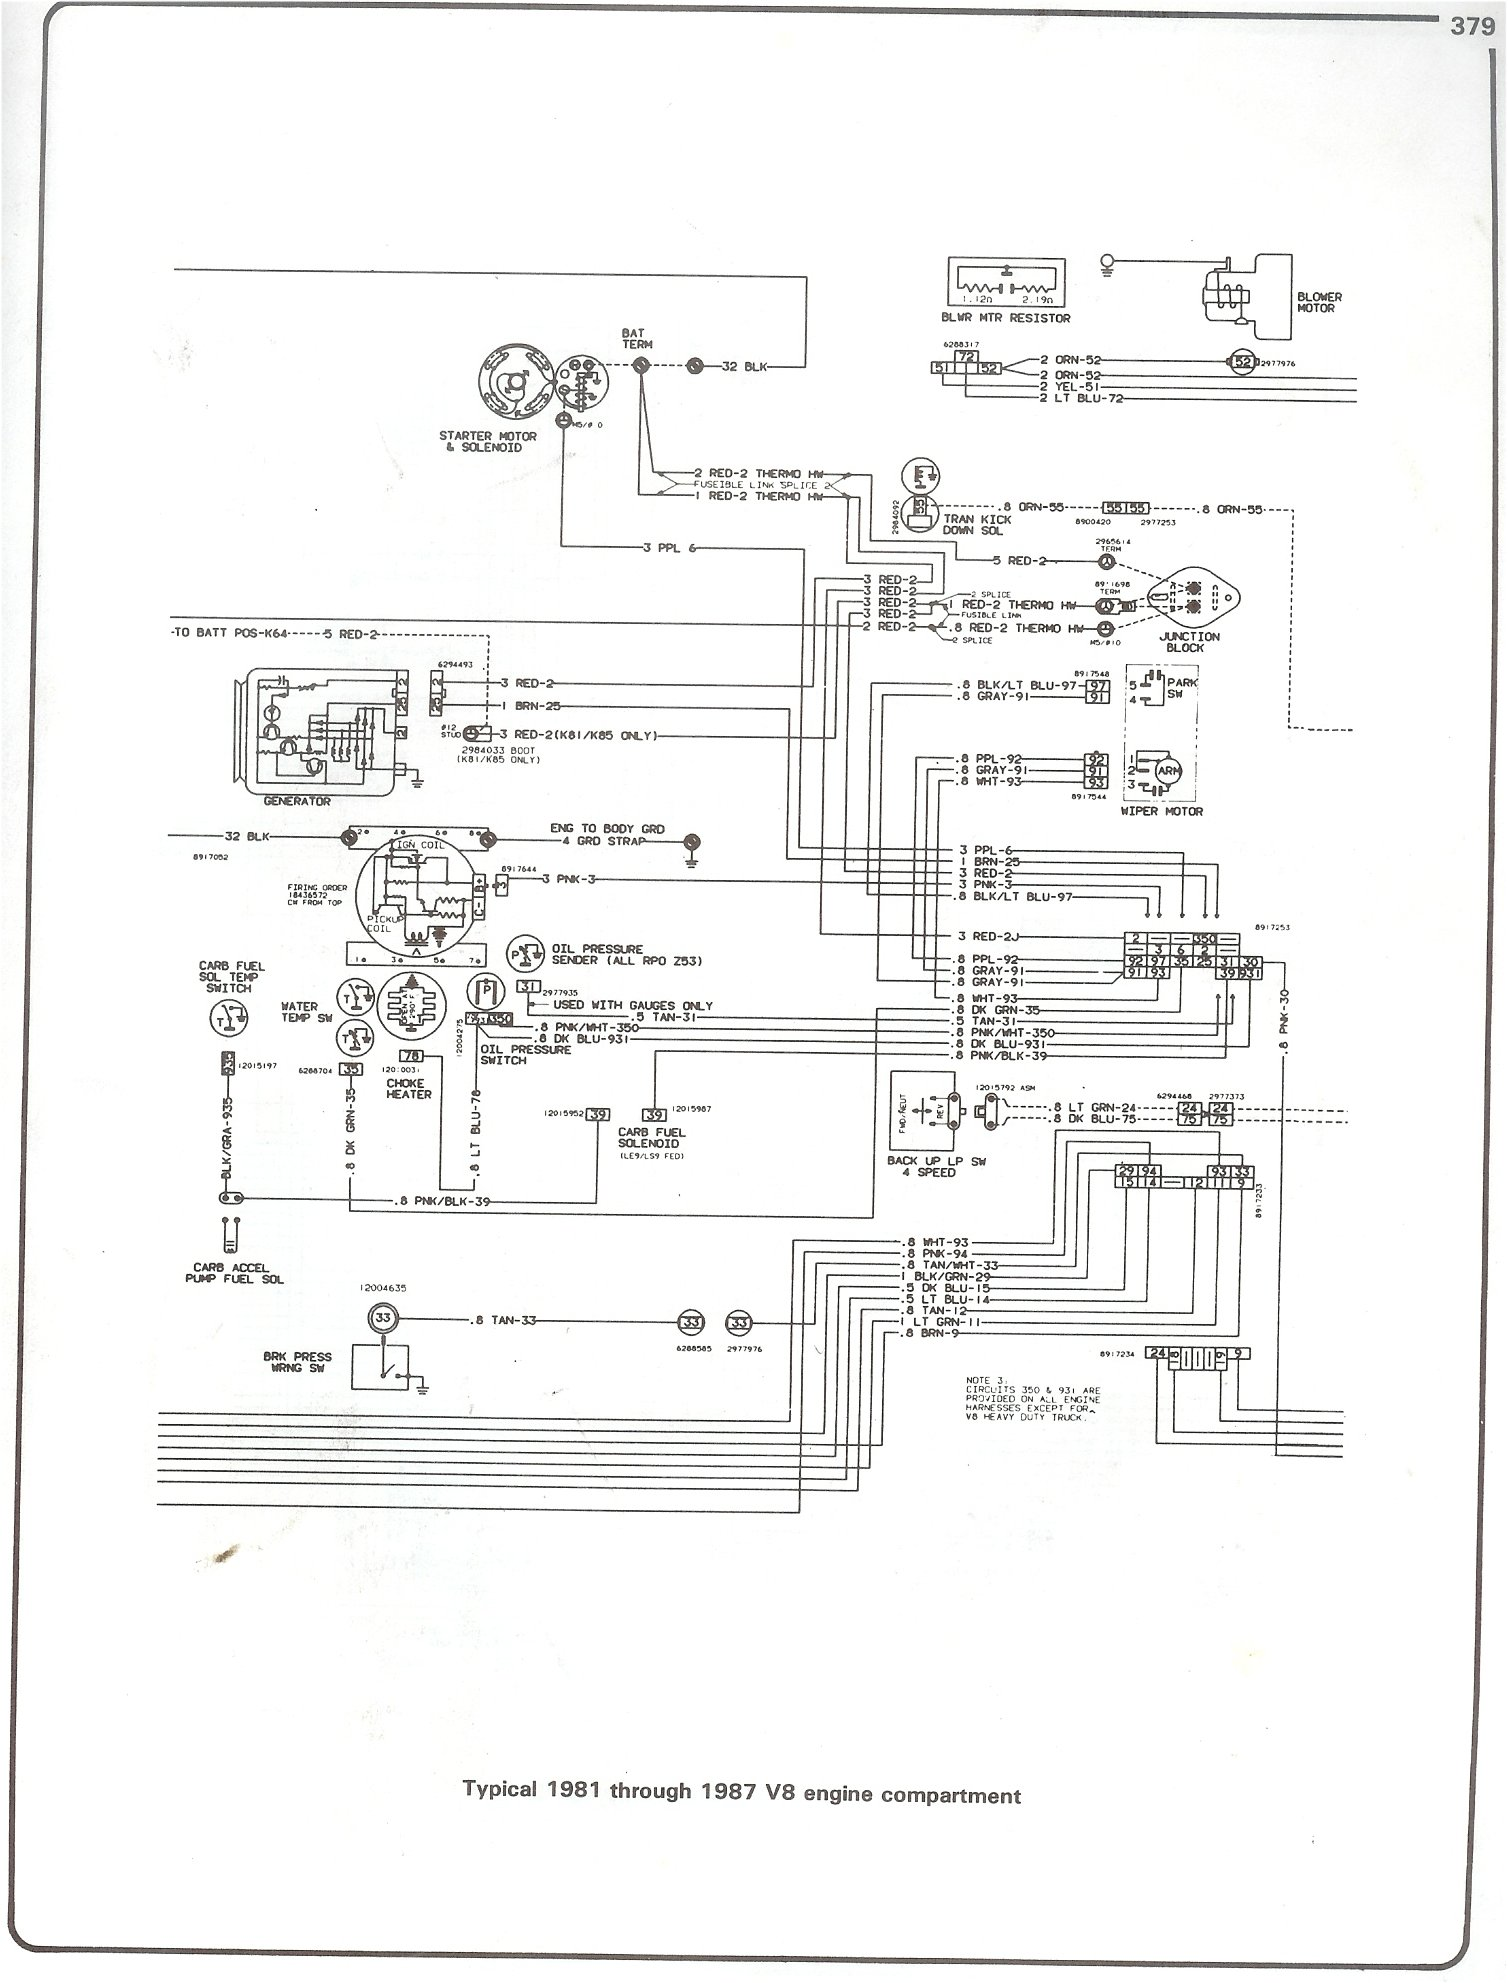 81 87_V8_engine complete 73 87 wiring diagrams 1982 chevy truck fuse box diagram at edmiracle.co